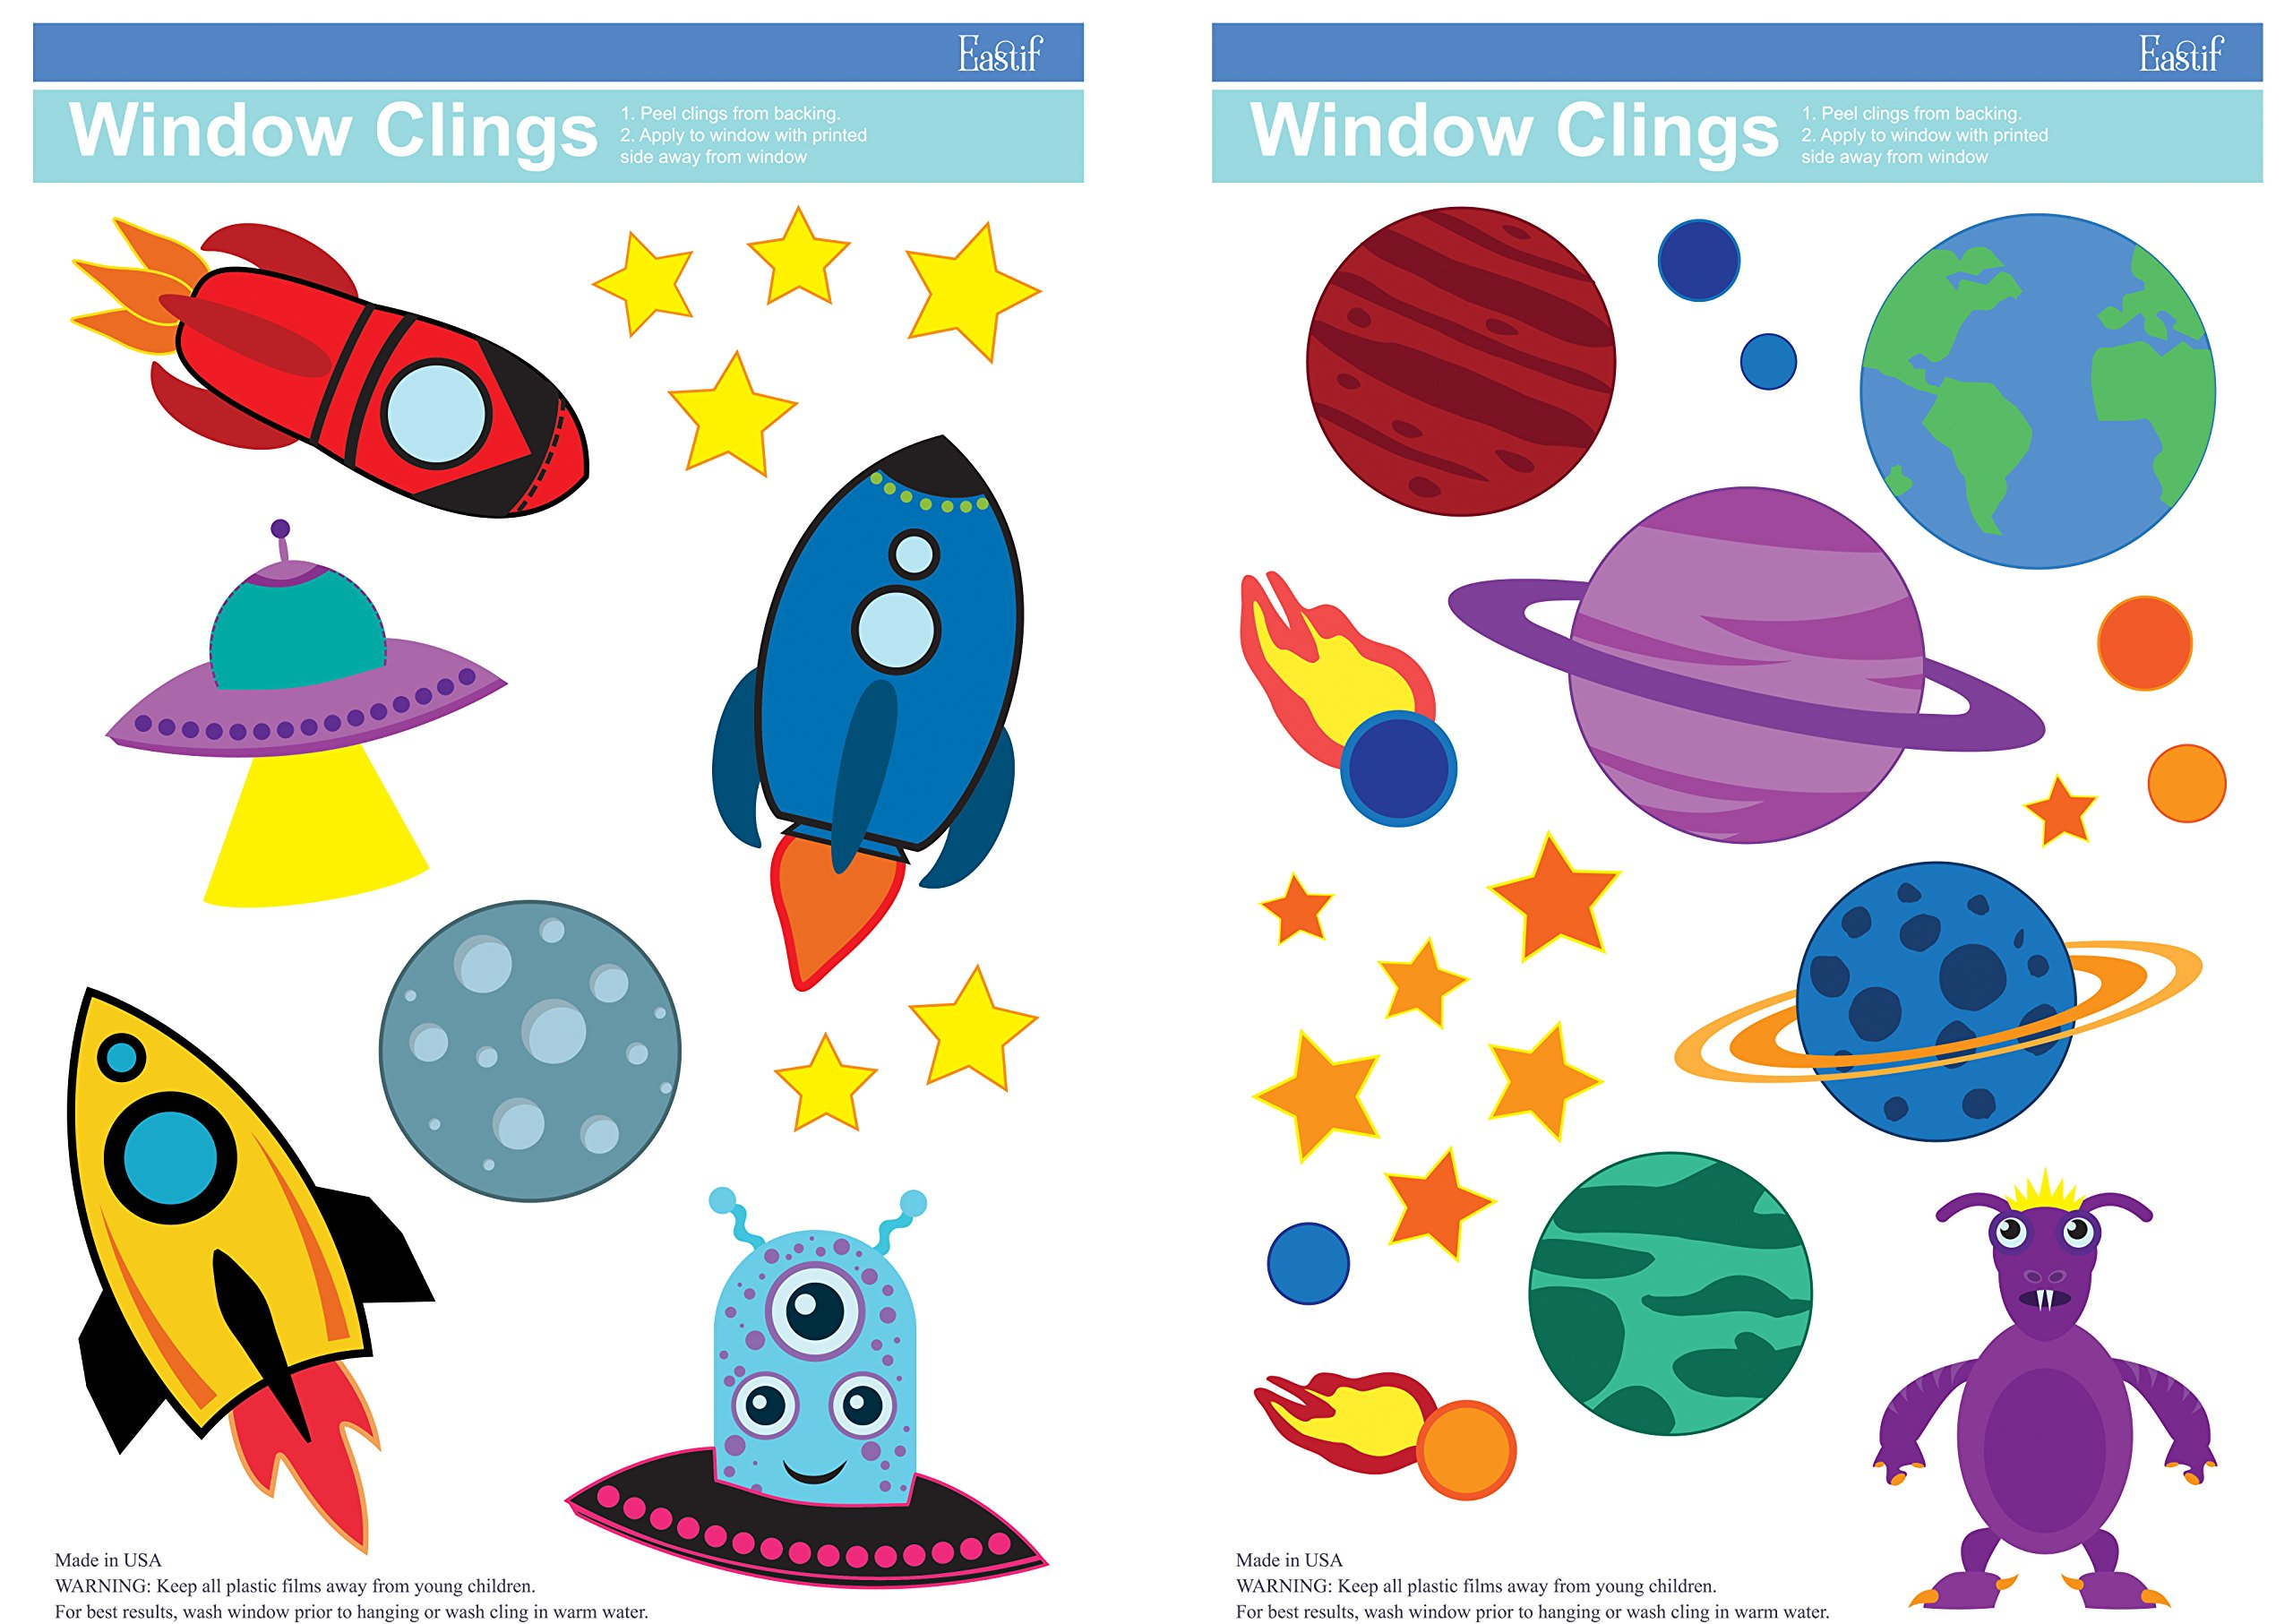 Space Window Clings, Rocket Ships, Planets, Stars, UFOs & More! 2 Sheets